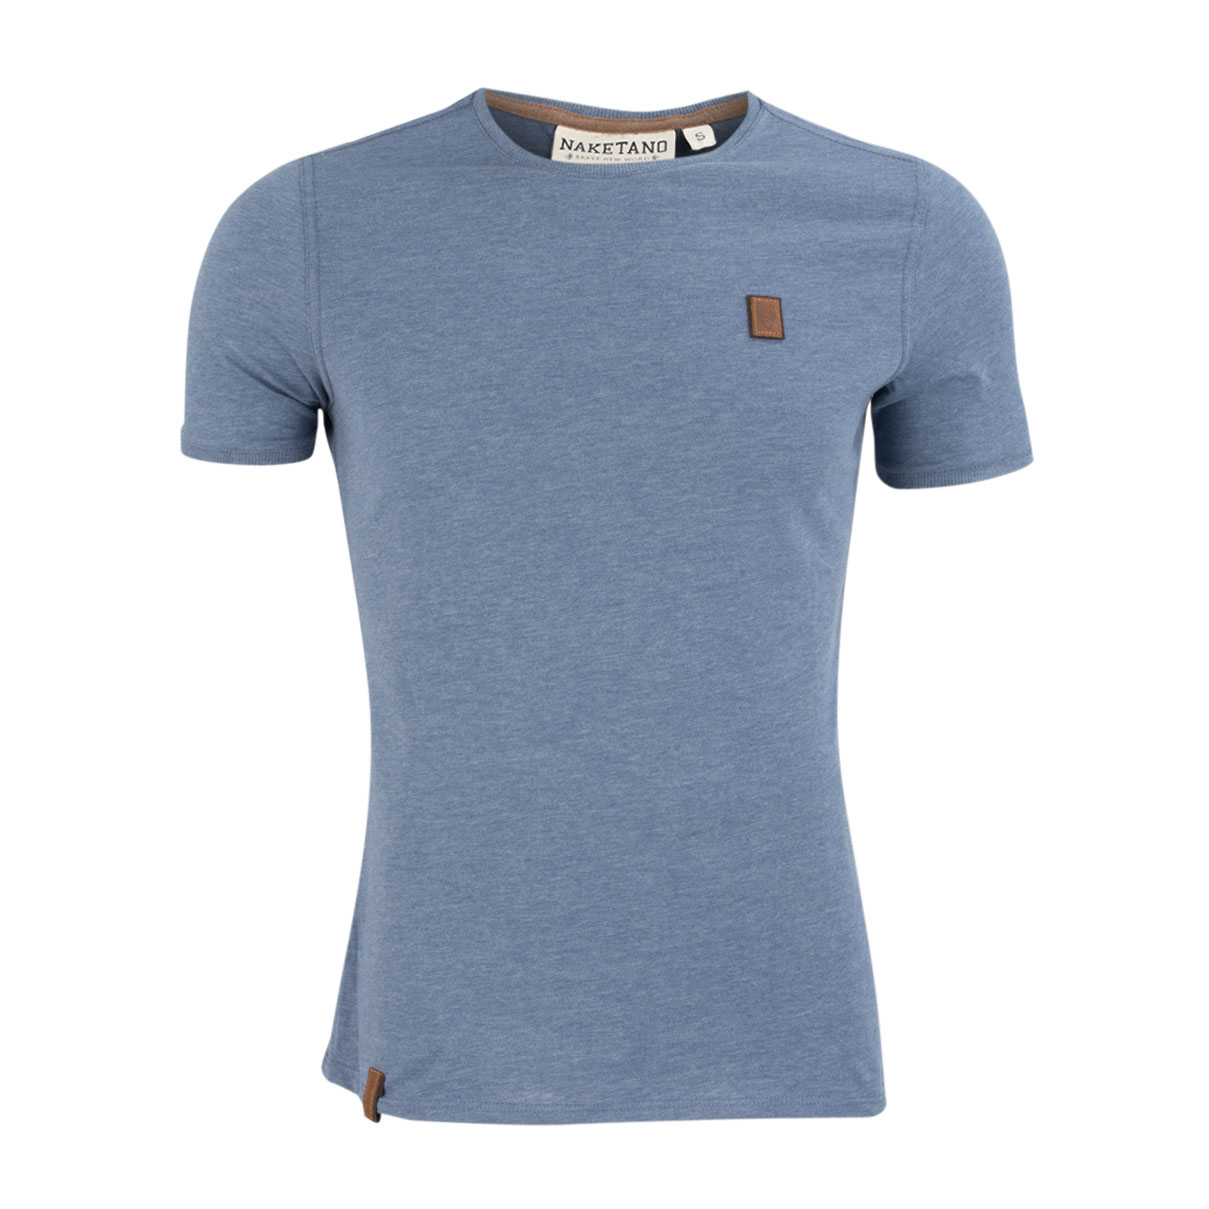 T-Shirt - Regular Fit - Labelpatch